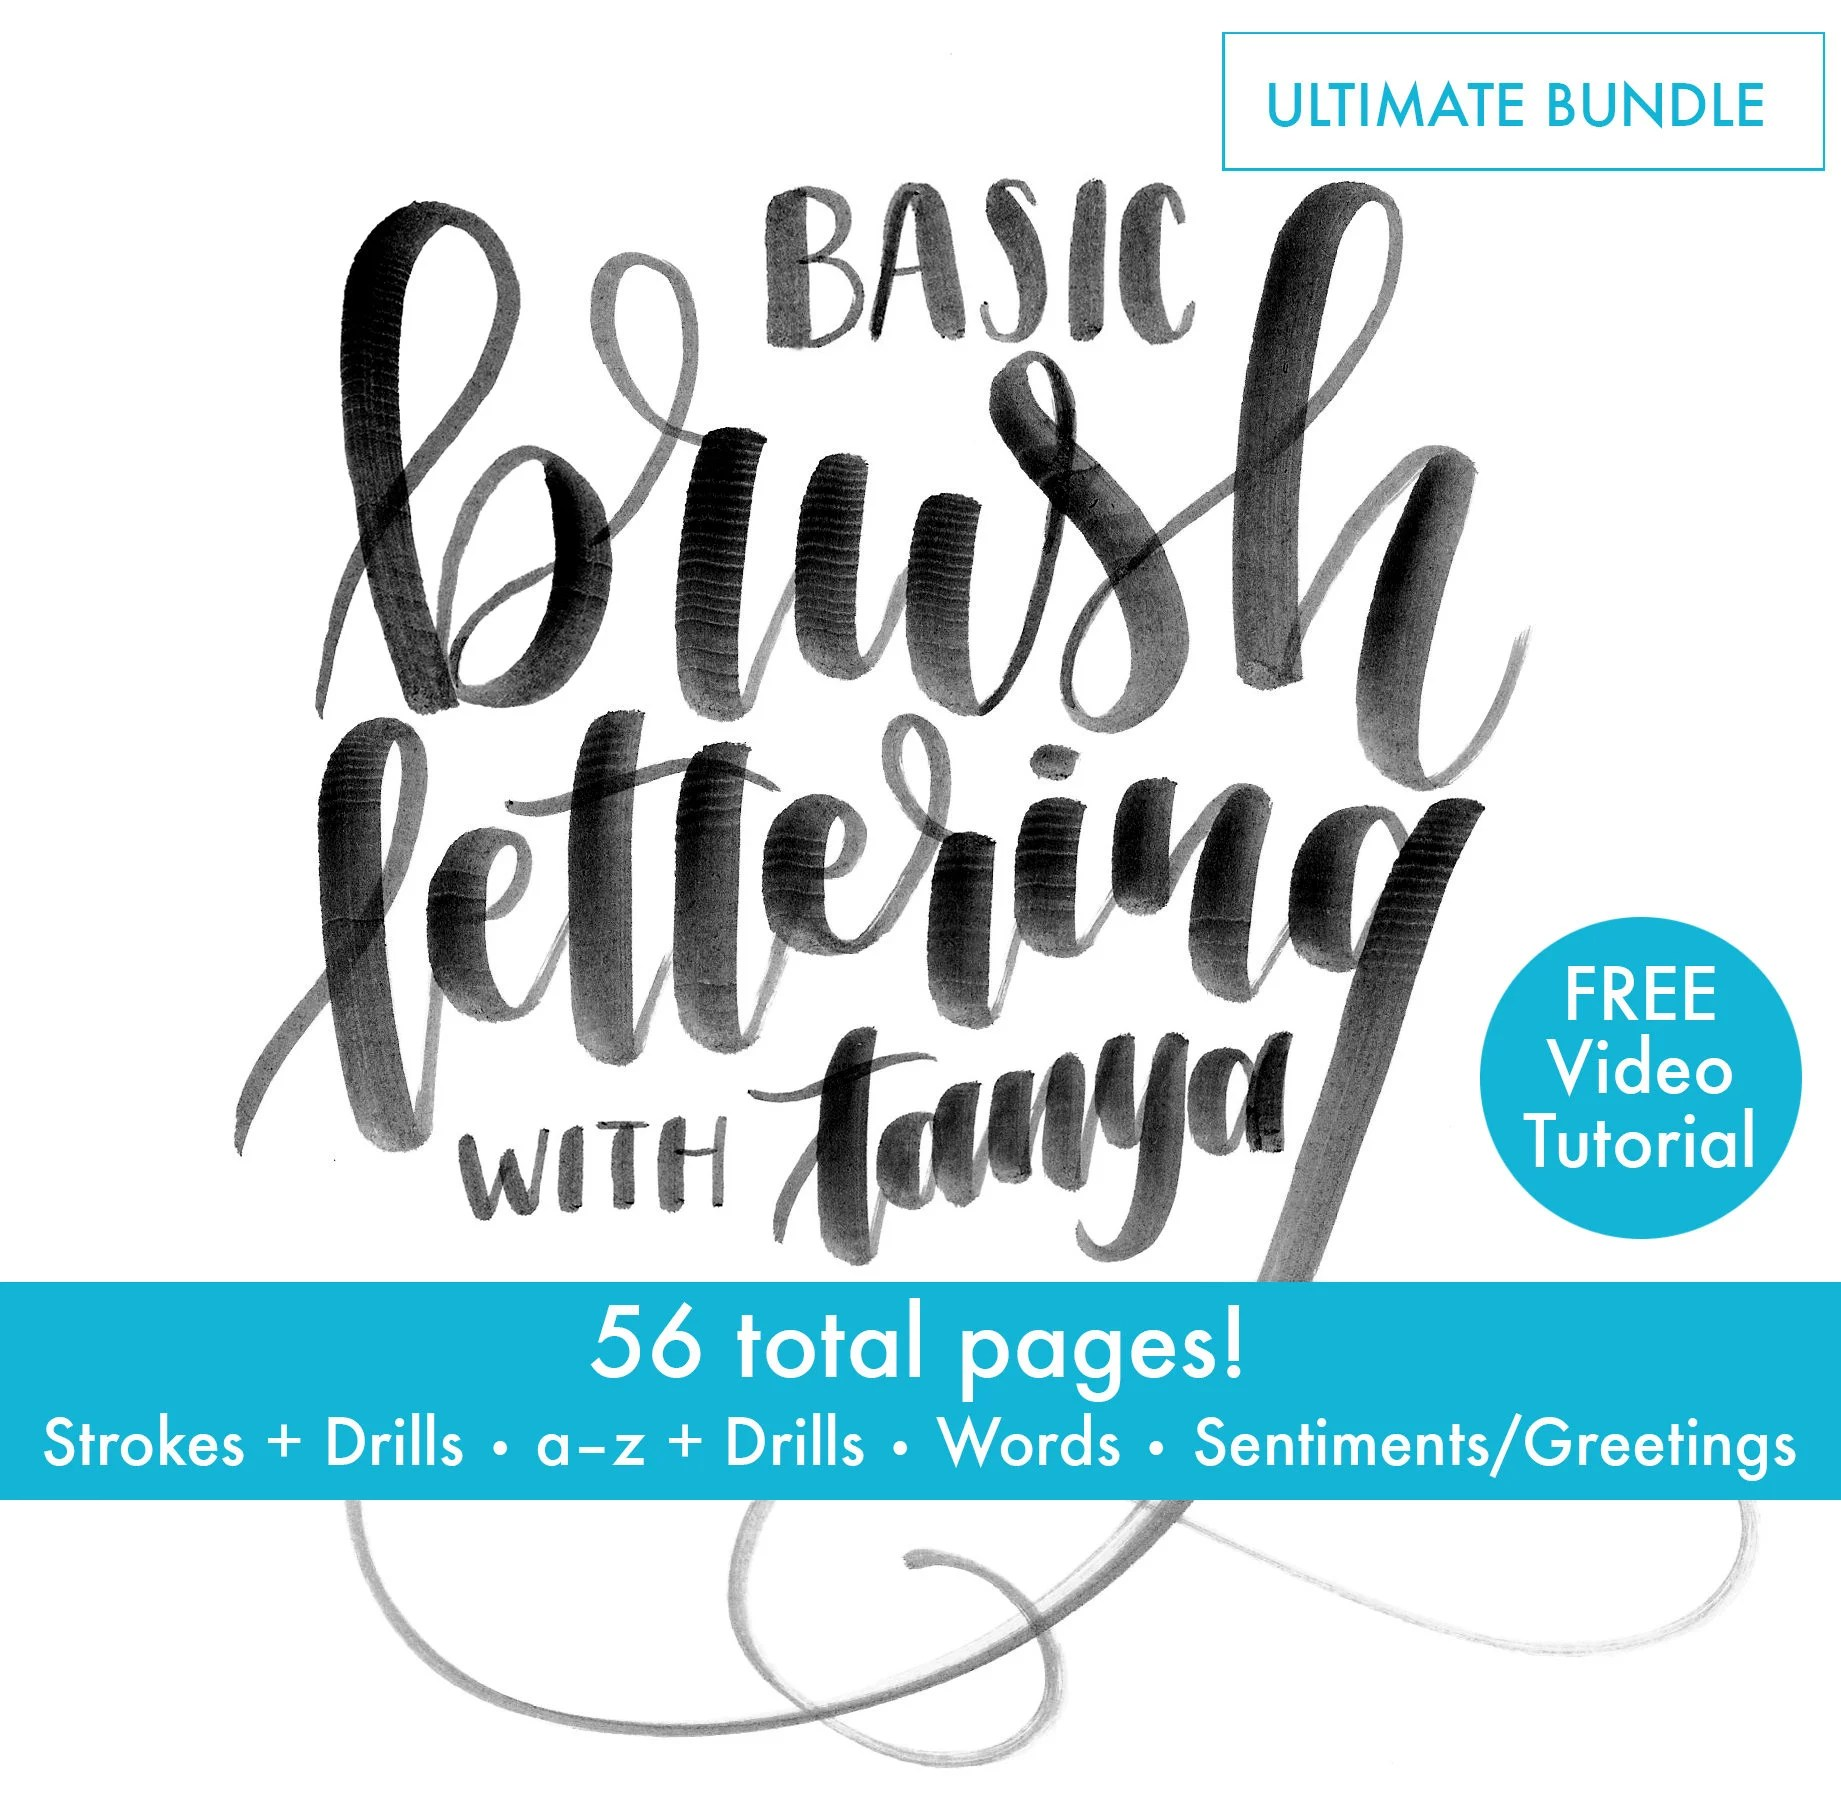 Ultimate Bundle Perfect Beginner Set Brush Lettering